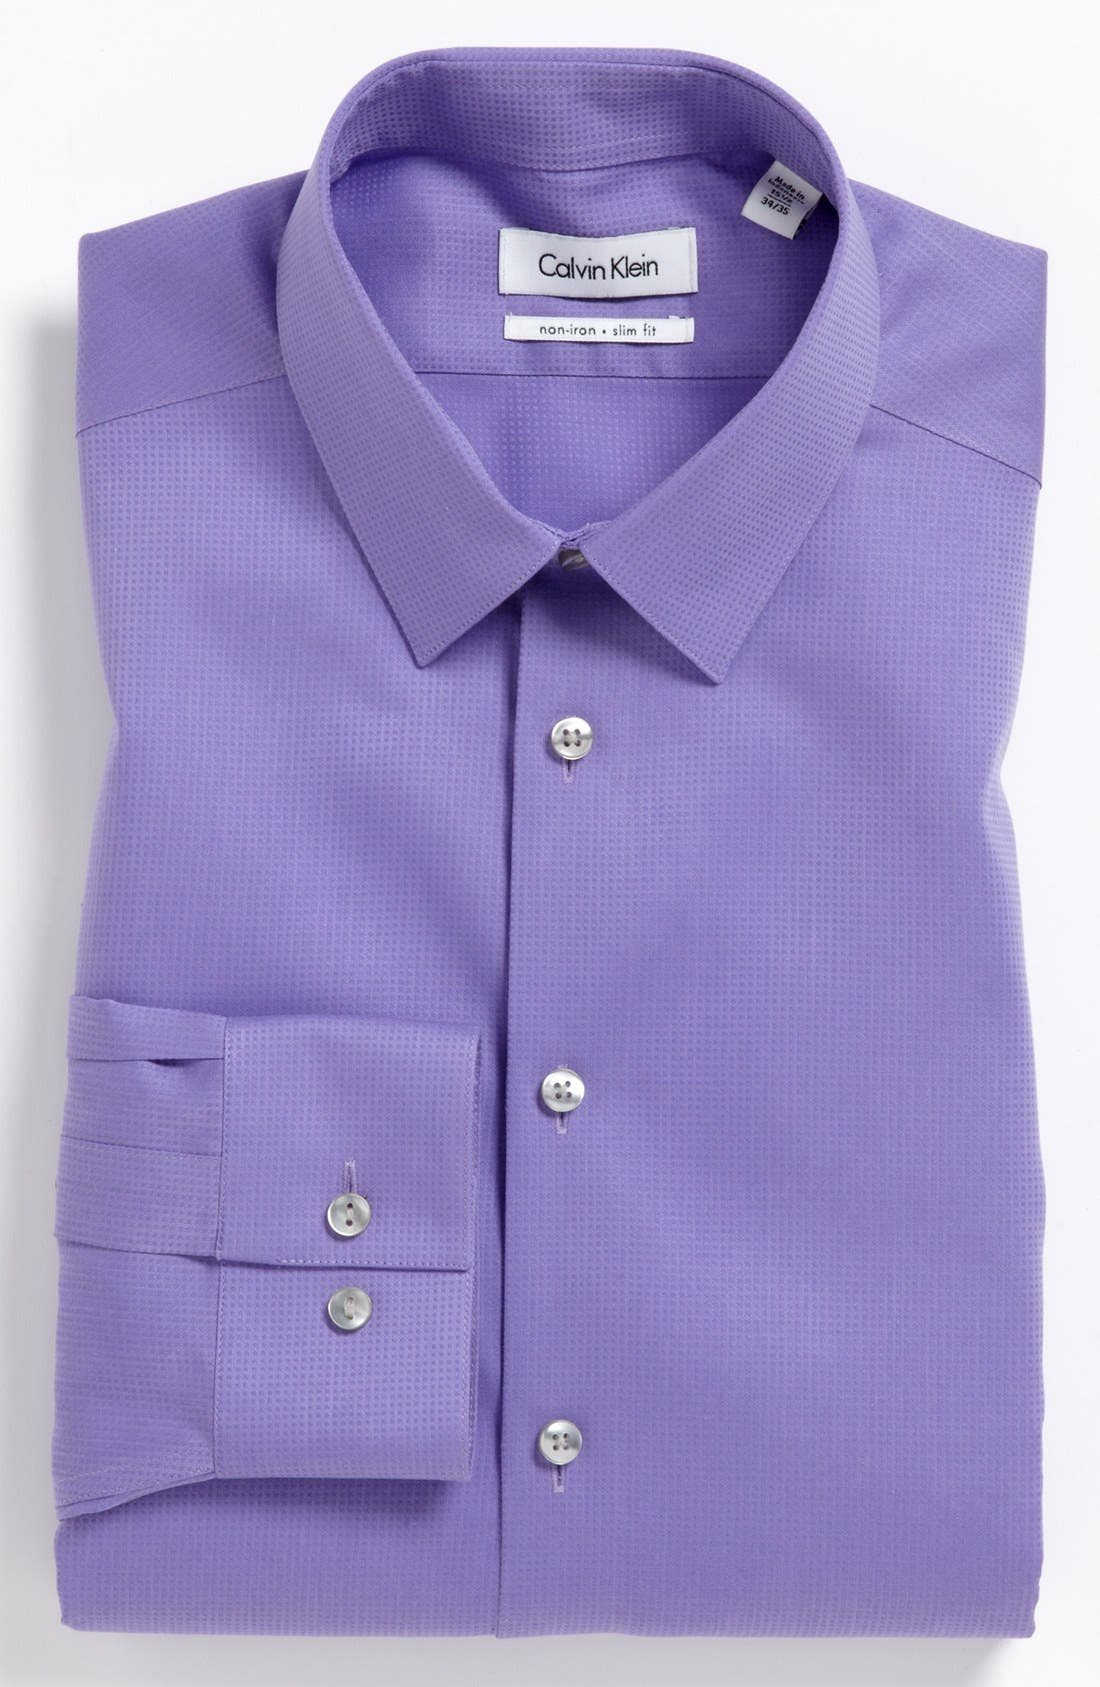 Alternate Image 1 Selected - Calvin Klein 'Miami Check' Slim Fit Non-Iron Dress Shirt